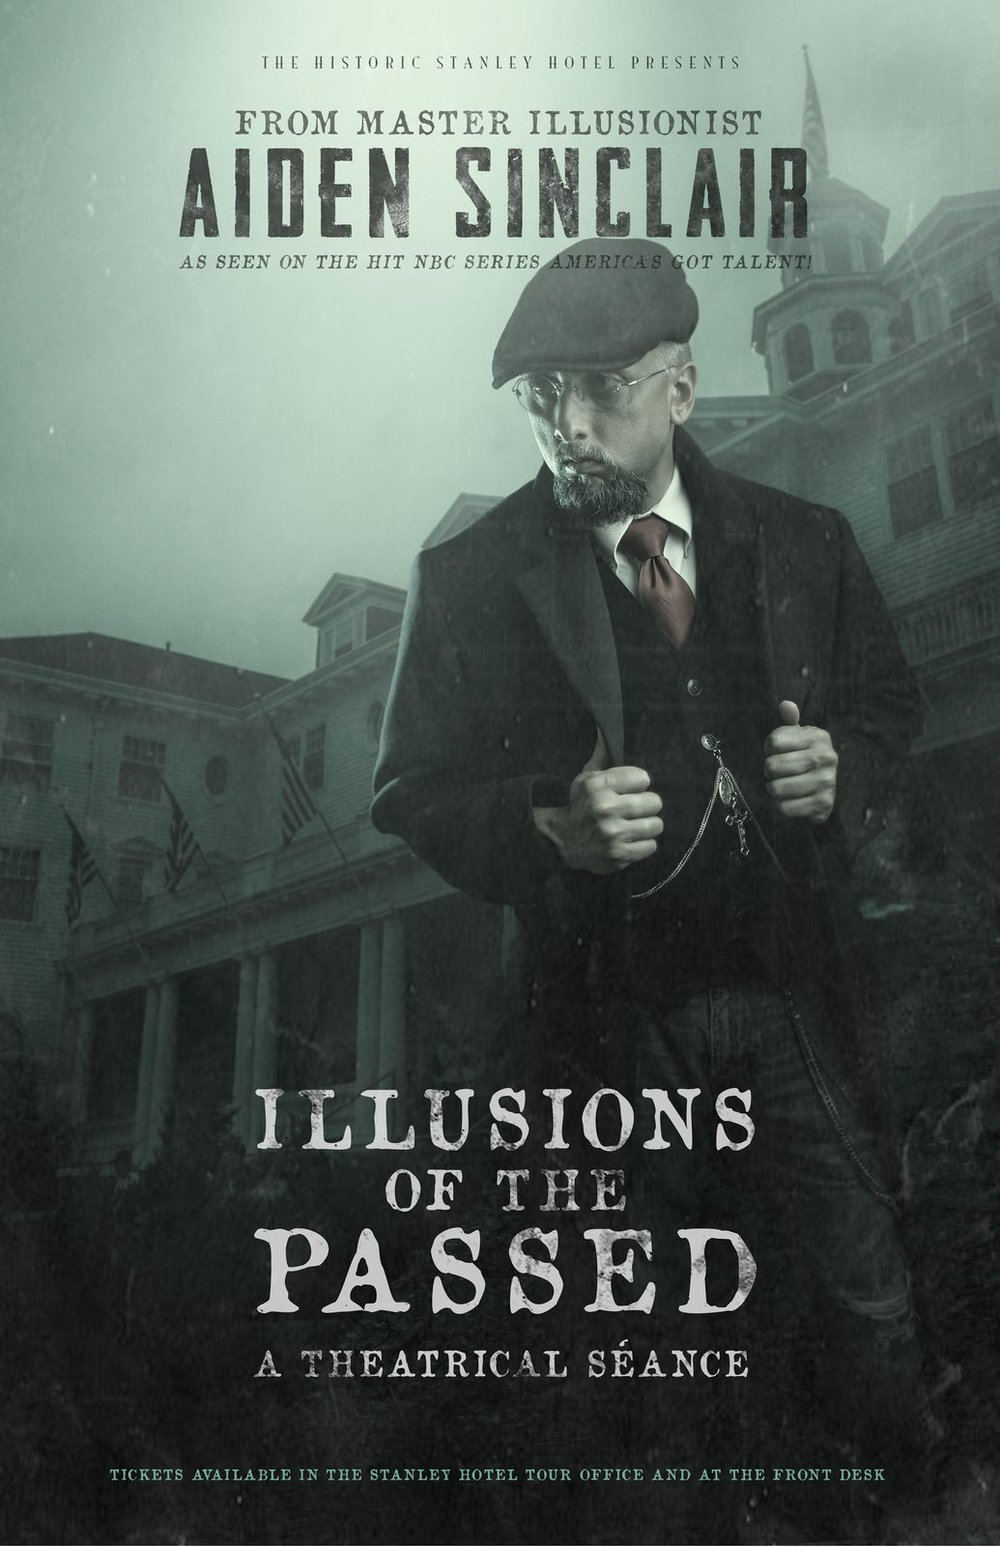 - Are you interested in the paranormal? Do you enjoy magic shows? Illusions of the Passed is an illusion performance with a paranormal twist unlike anything you've ever seen before.